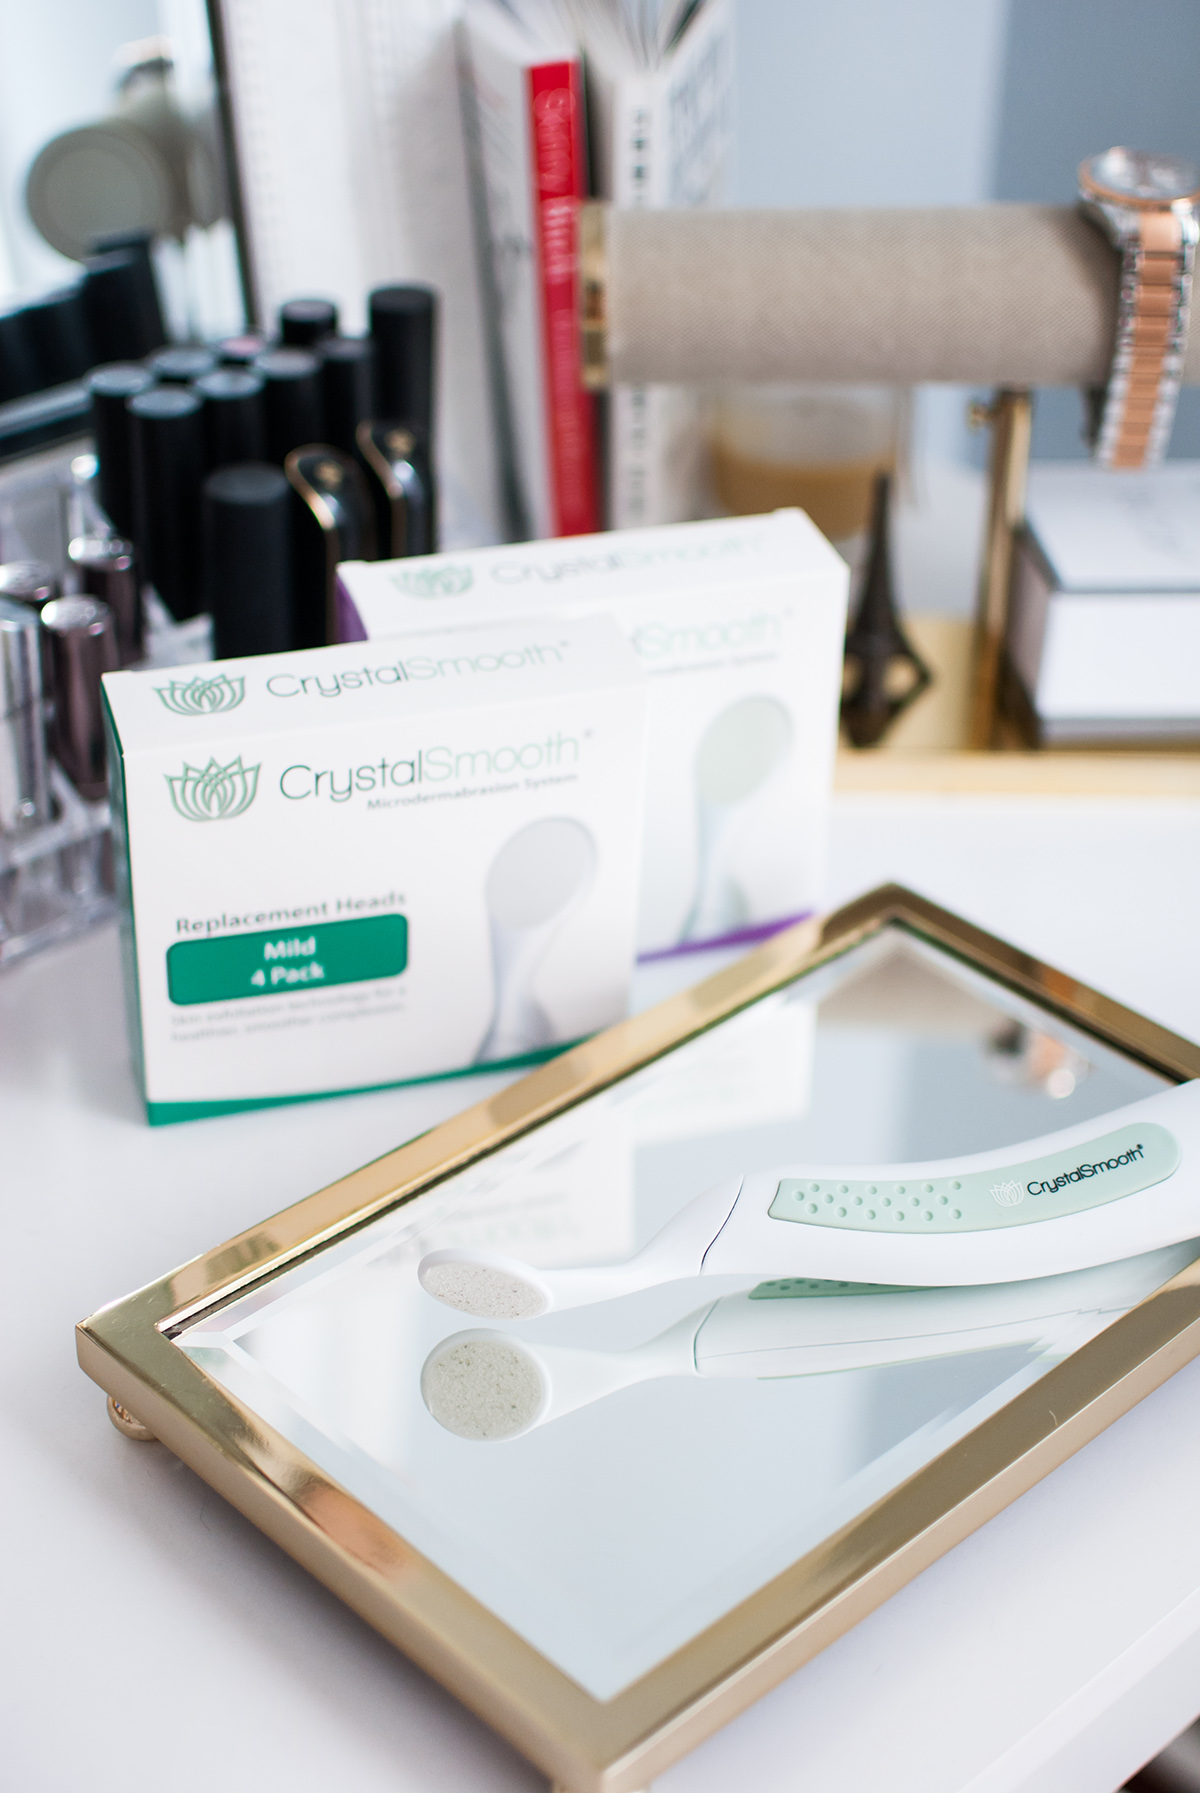 Favorite Wellness Products   This handheld skin exfoliator is an easy way to achieve microdermabrasion at home!